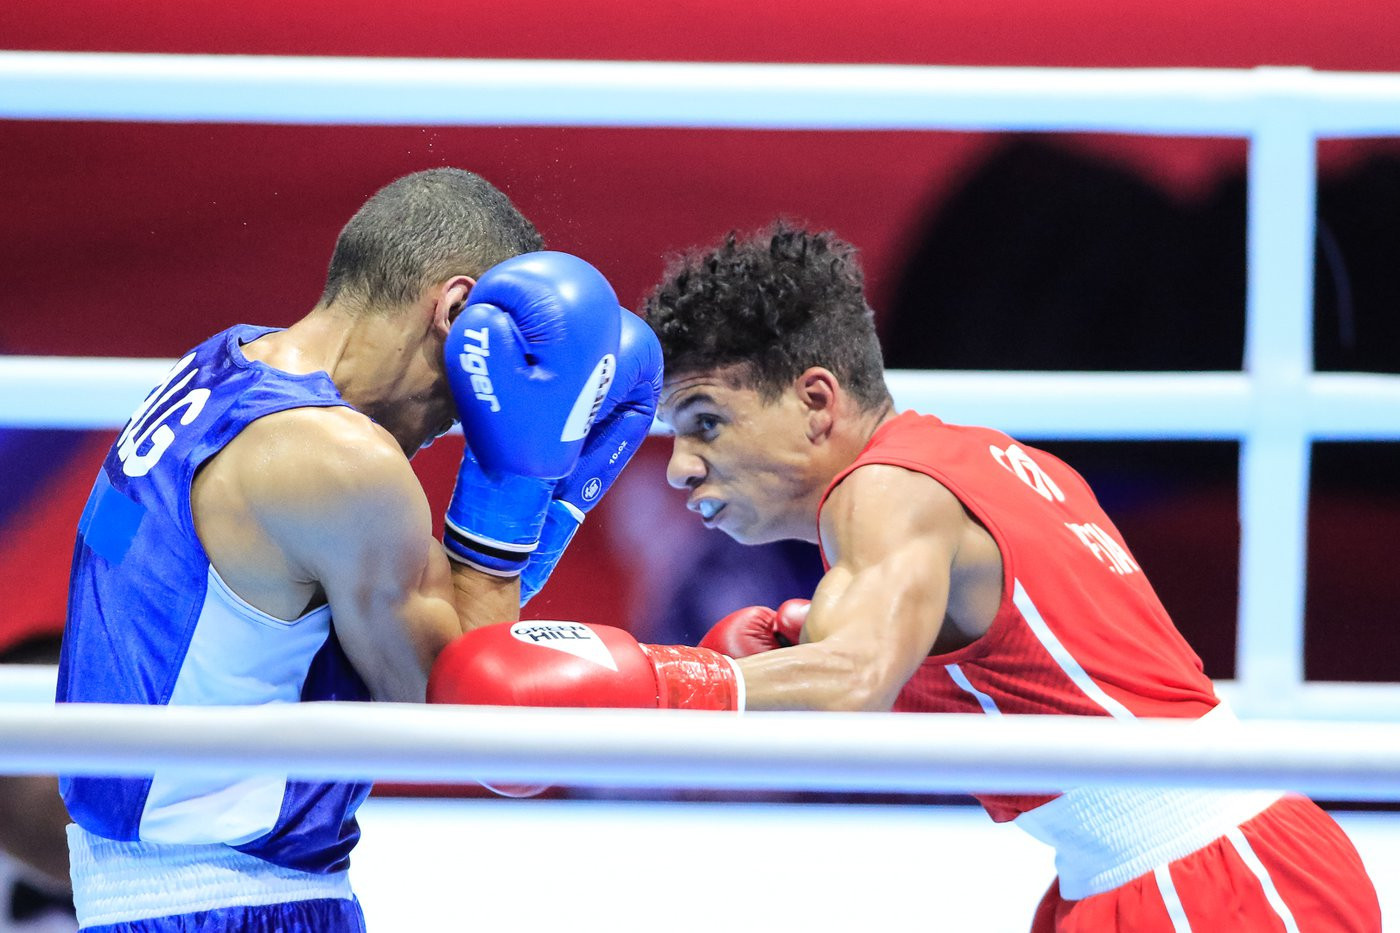 In the flyweight division, top seed and defending champion Yosvany Veitía of Cuba only just got past Mohamed Flissi of Algeria 3-2 ©Yekaterinburg 2019